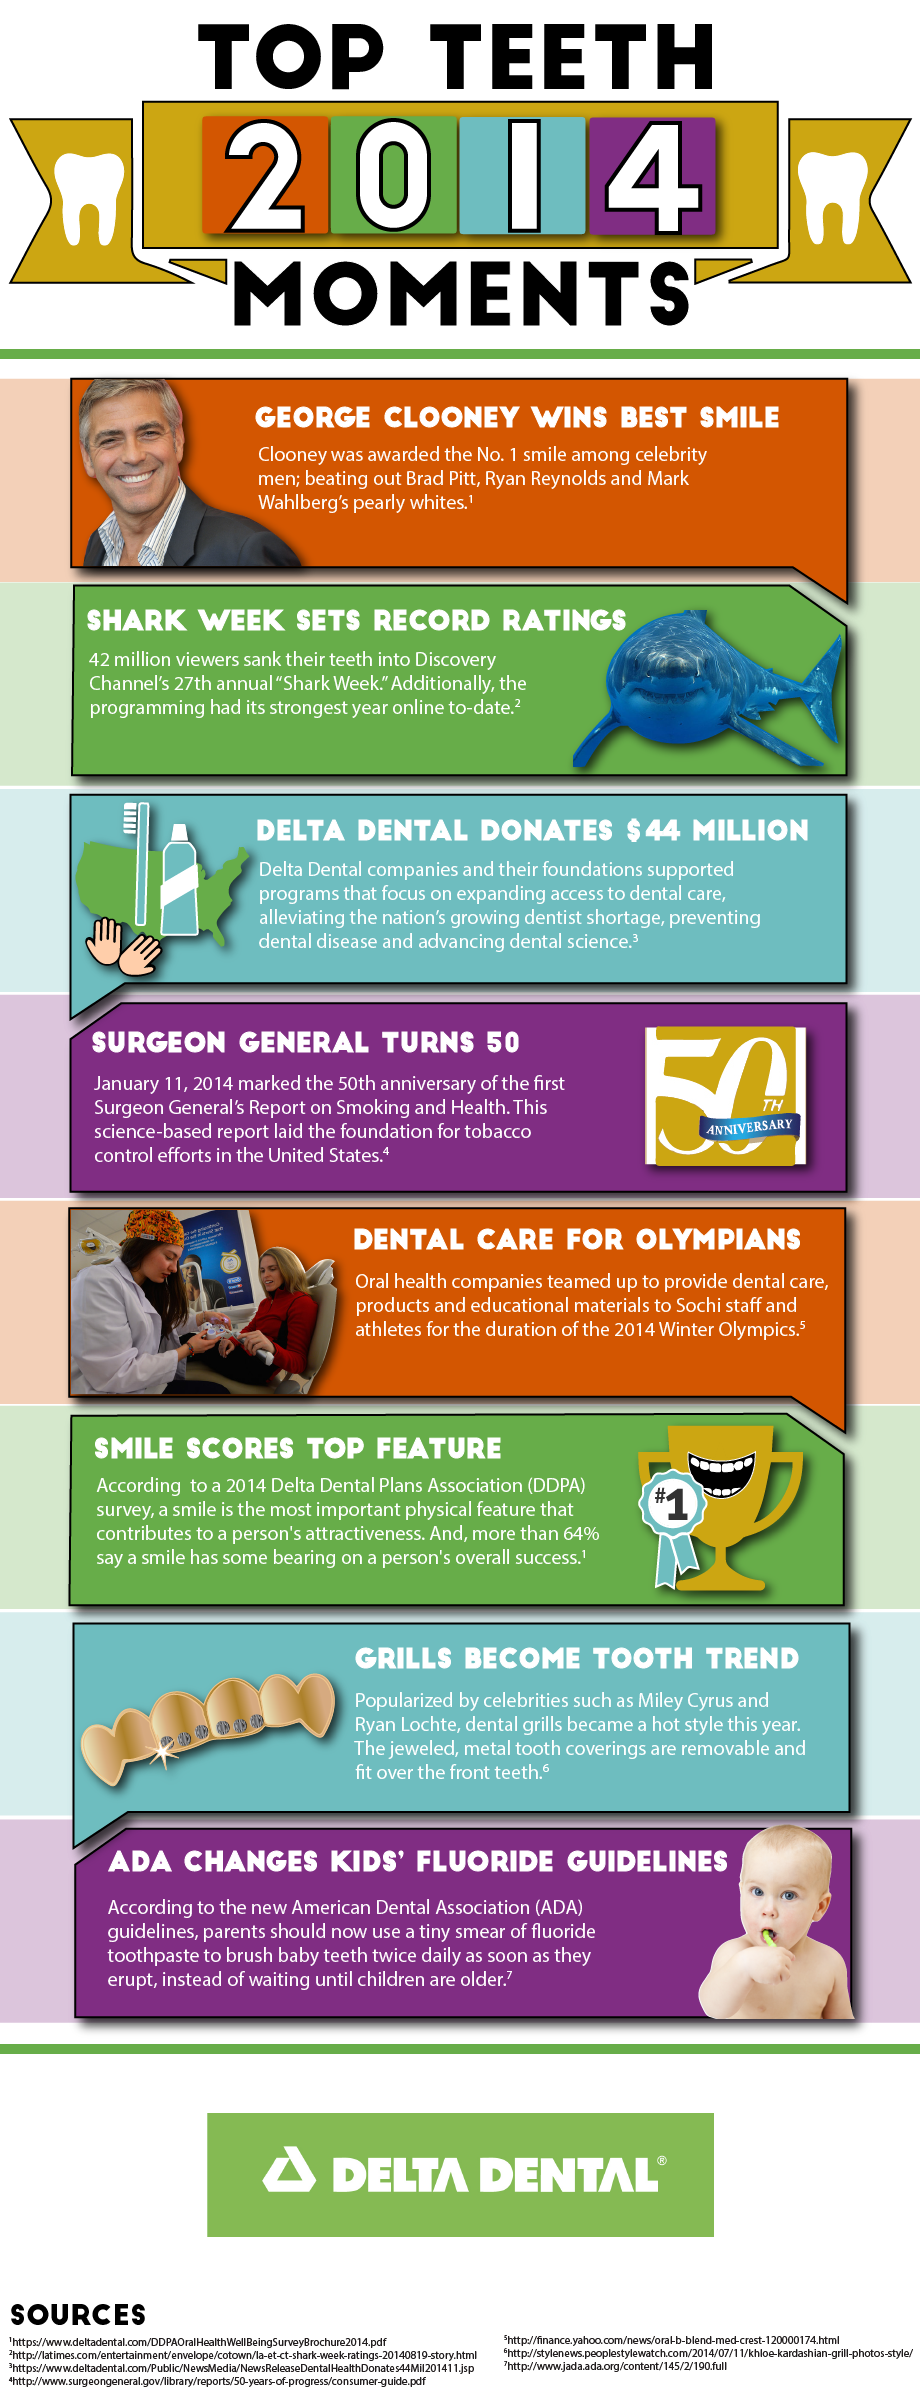 Top Teeth Moments Infographic